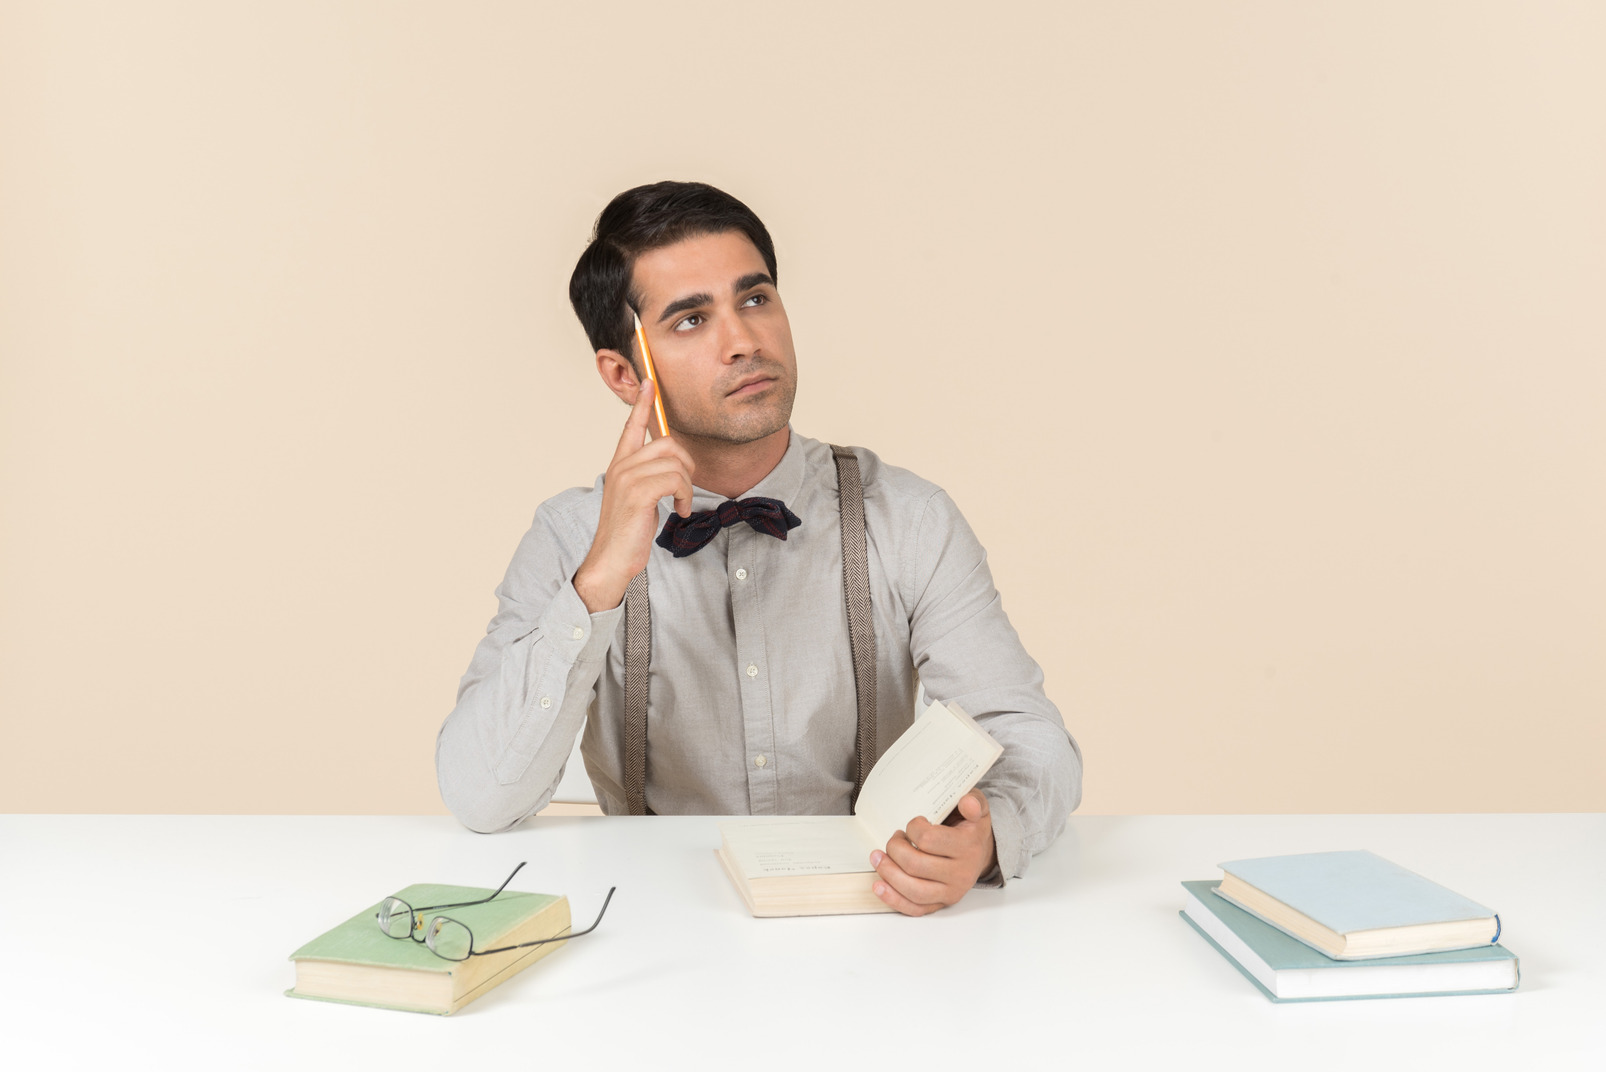 Pensive adult student sitting at the table with opened book